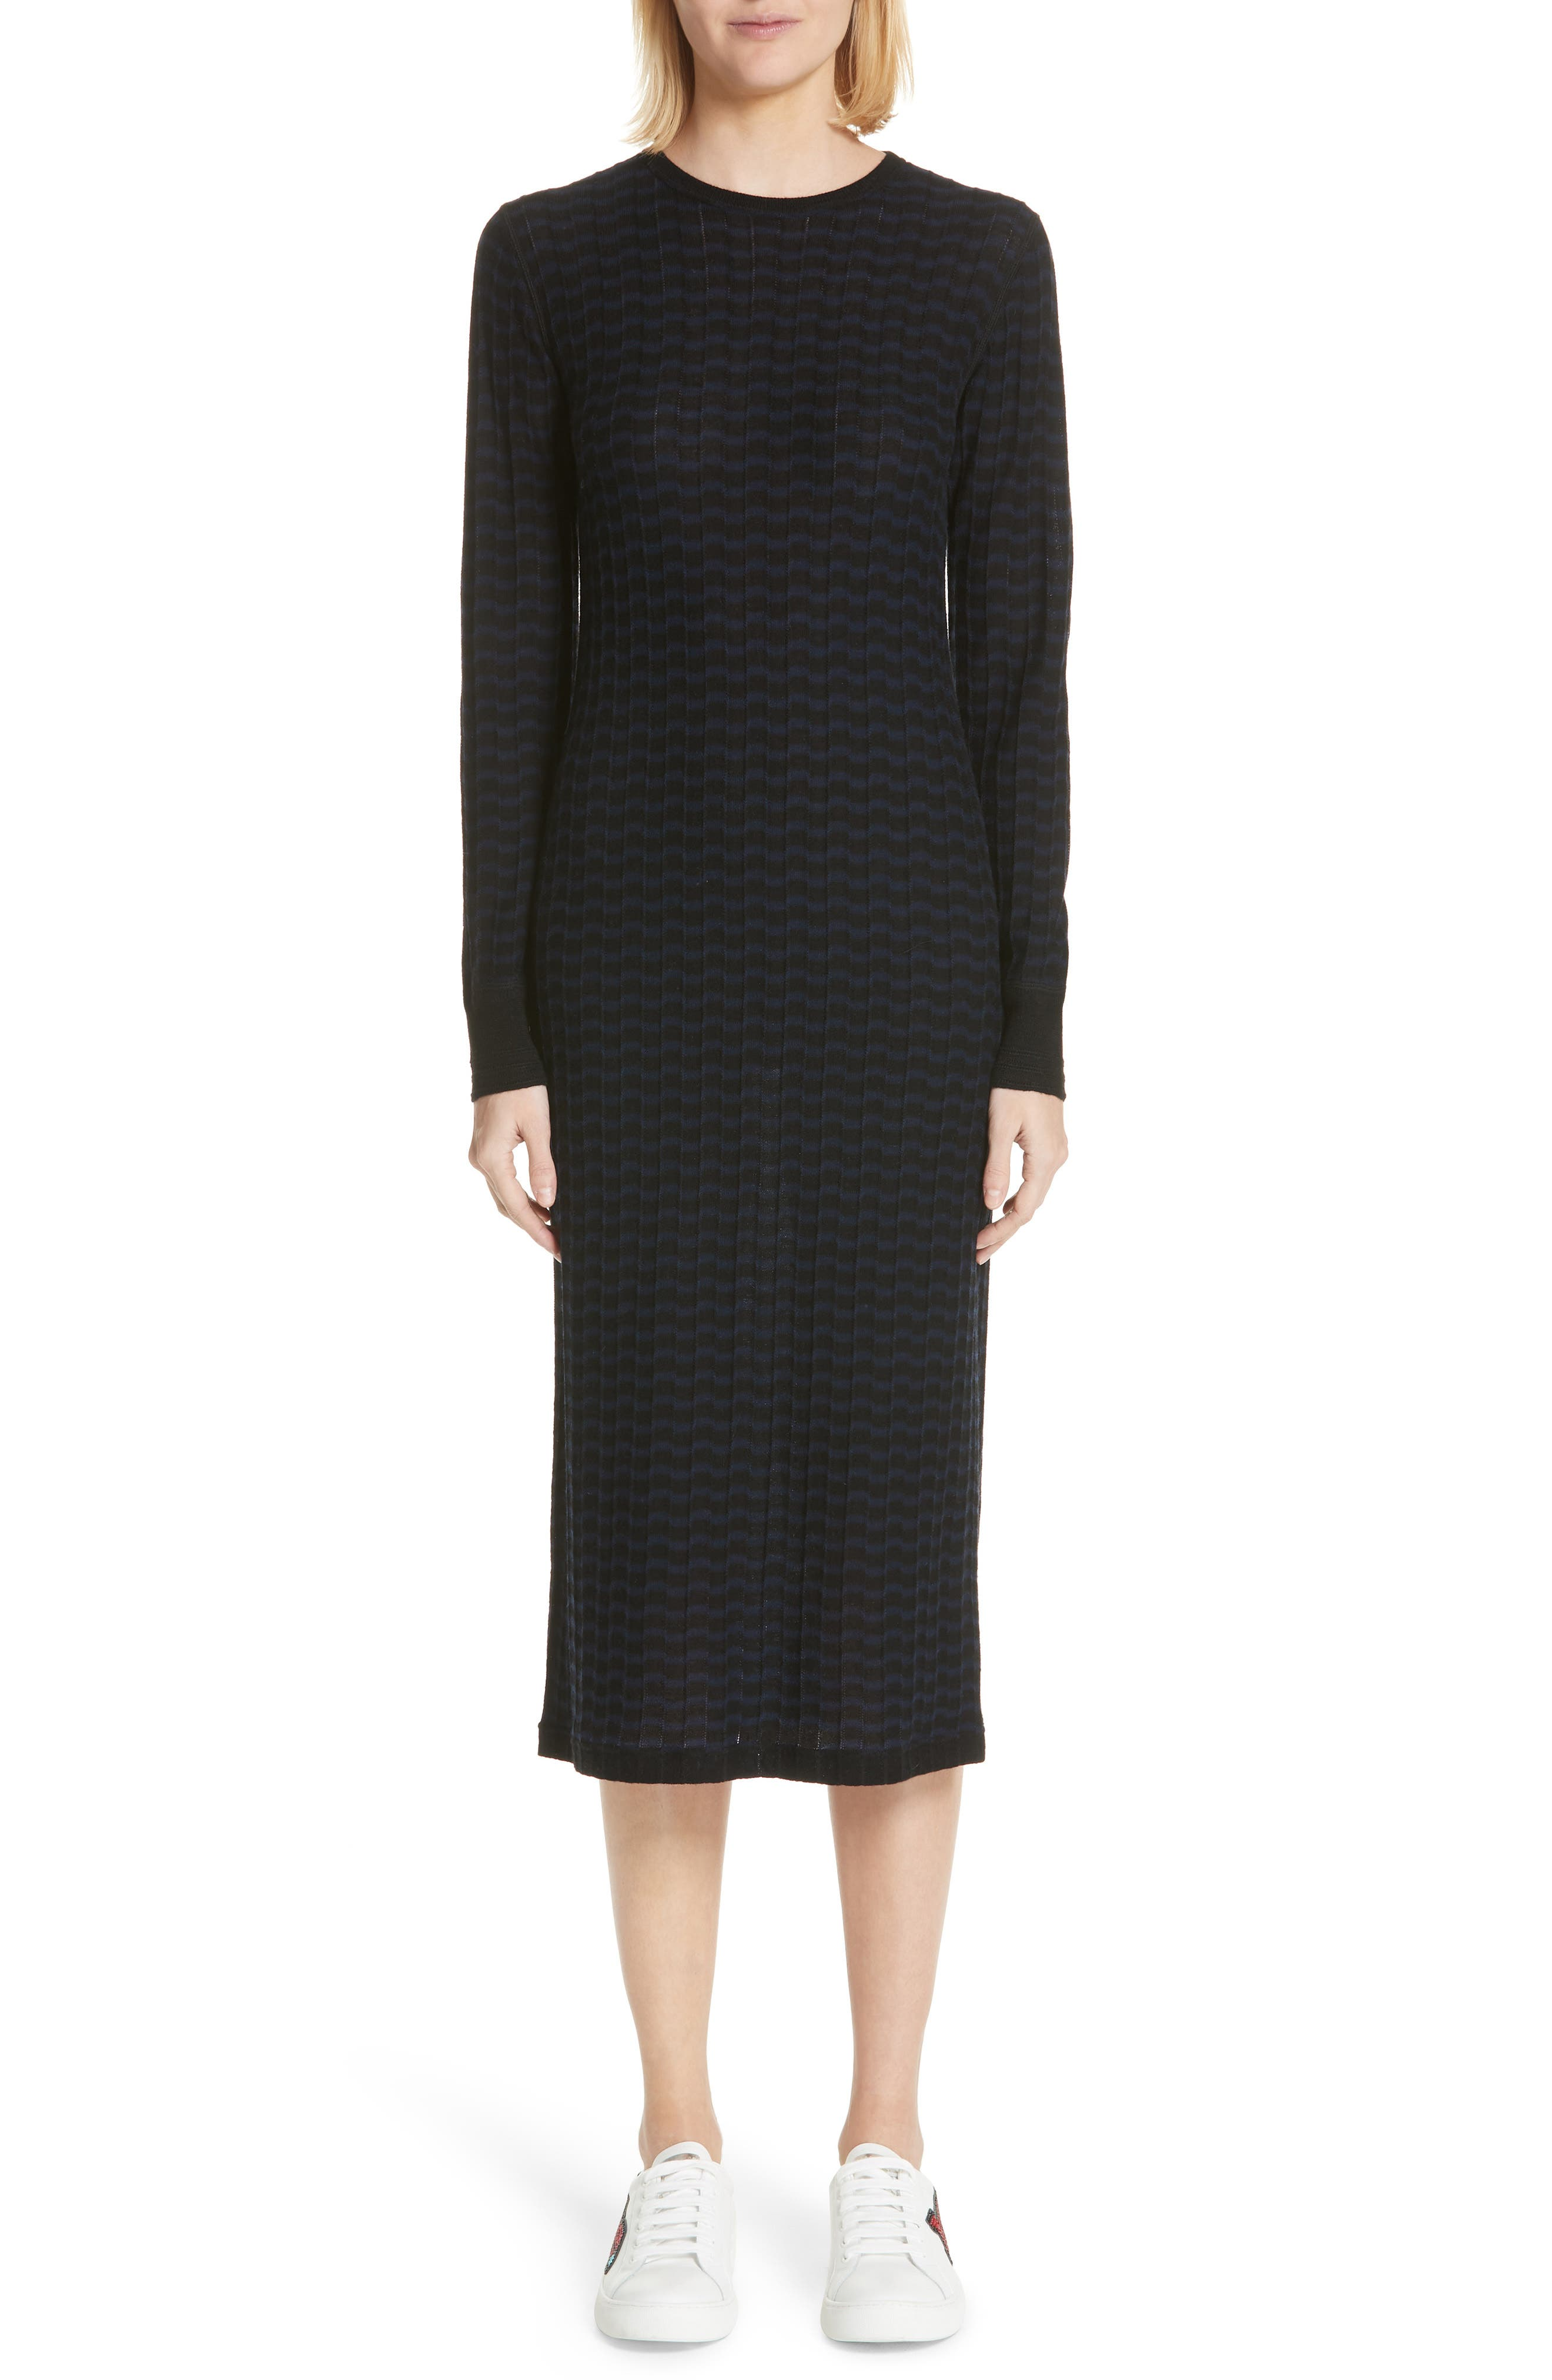 MARC JACOBS Stripe Wool Sweater-Dress, Main, color, 400